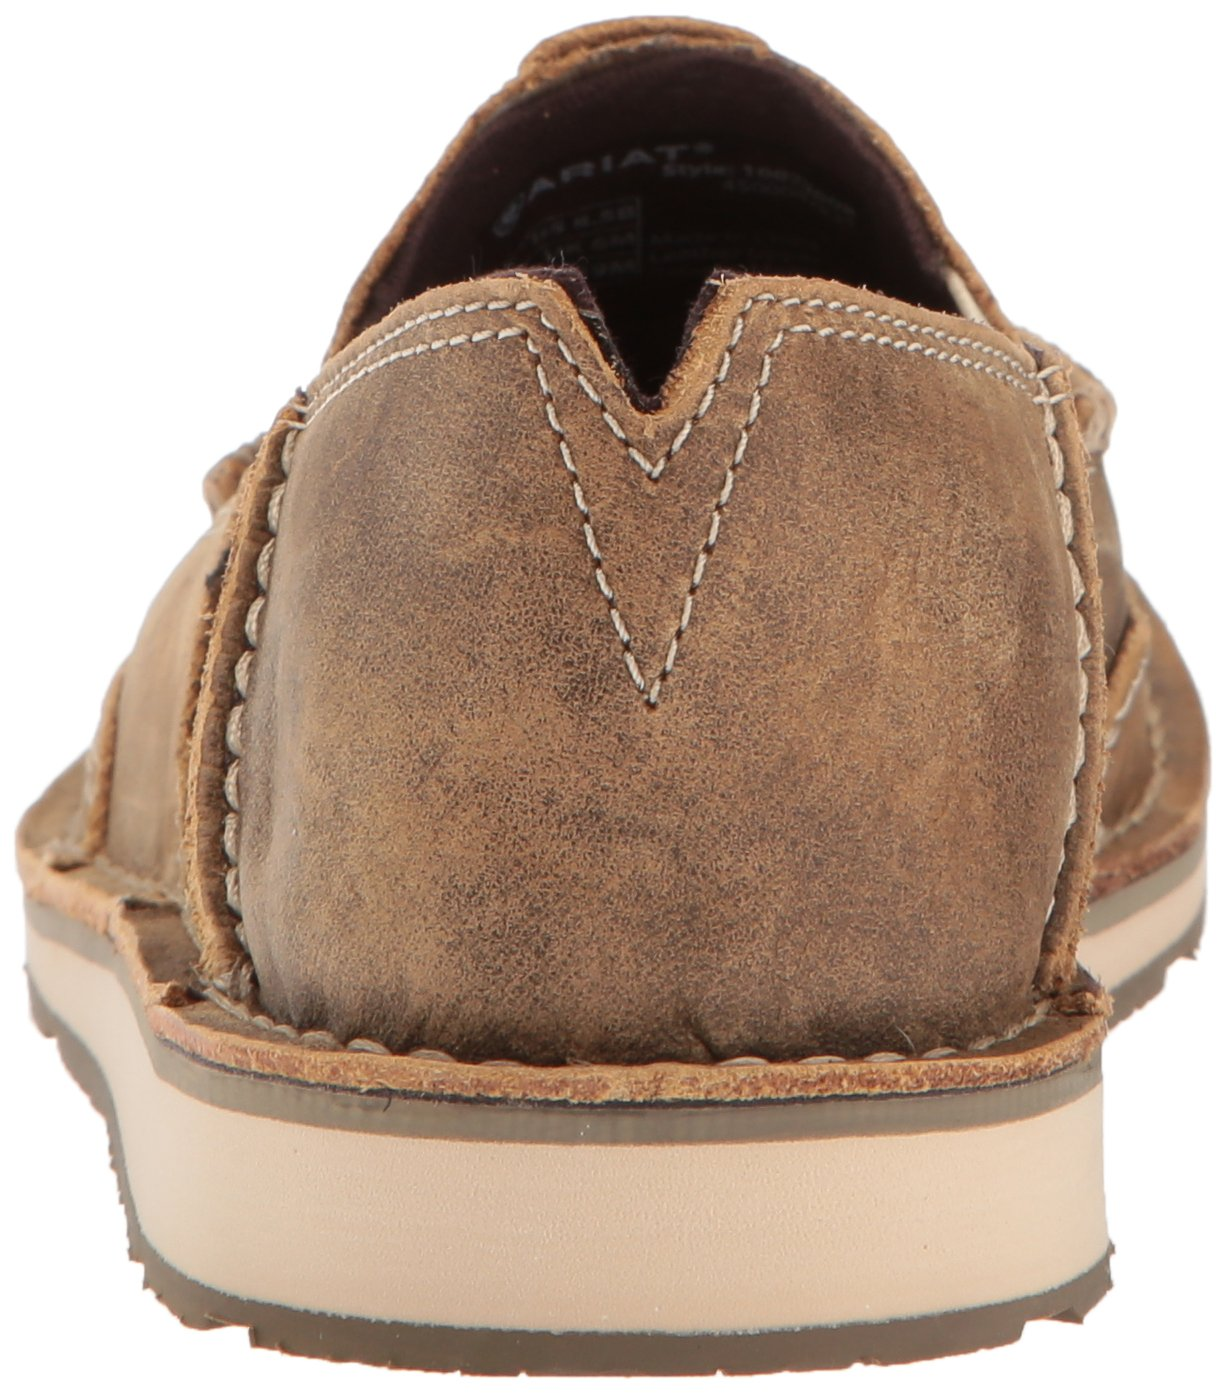 Ariat Women's Cruiser Slip-on Shoe Bomber B0719S8SN6 9 B(M) US|Brown Bomber Shoe 2b15a1